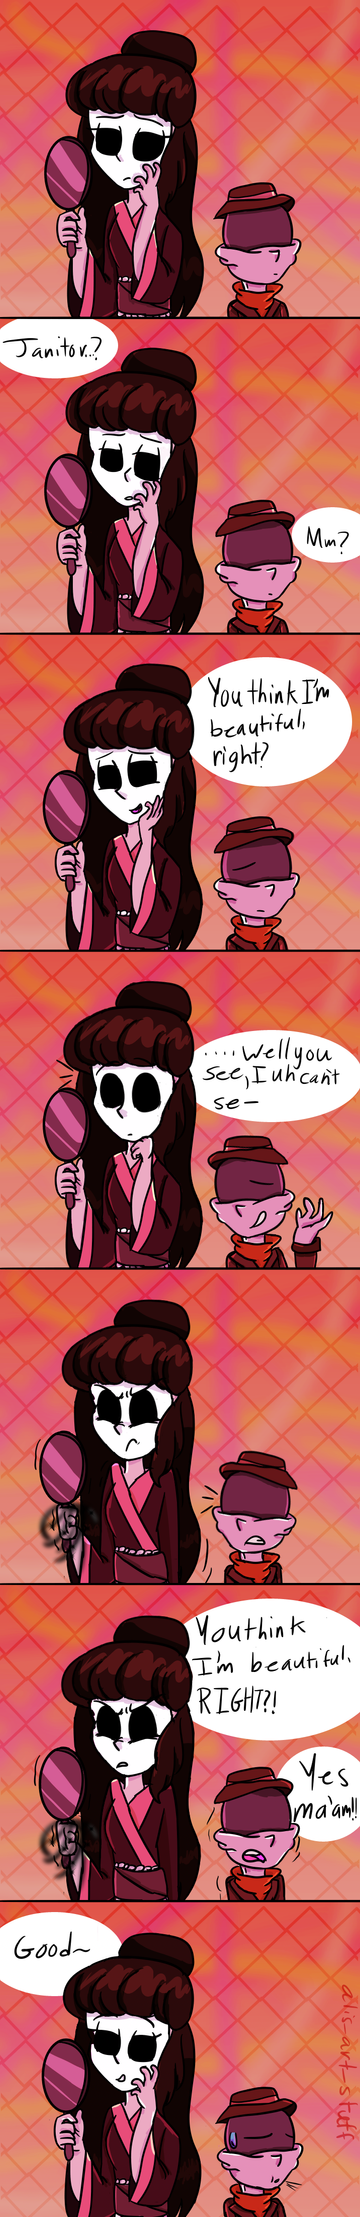 Im Beautiful, right? Little Nightmares comic by alicupcake12356